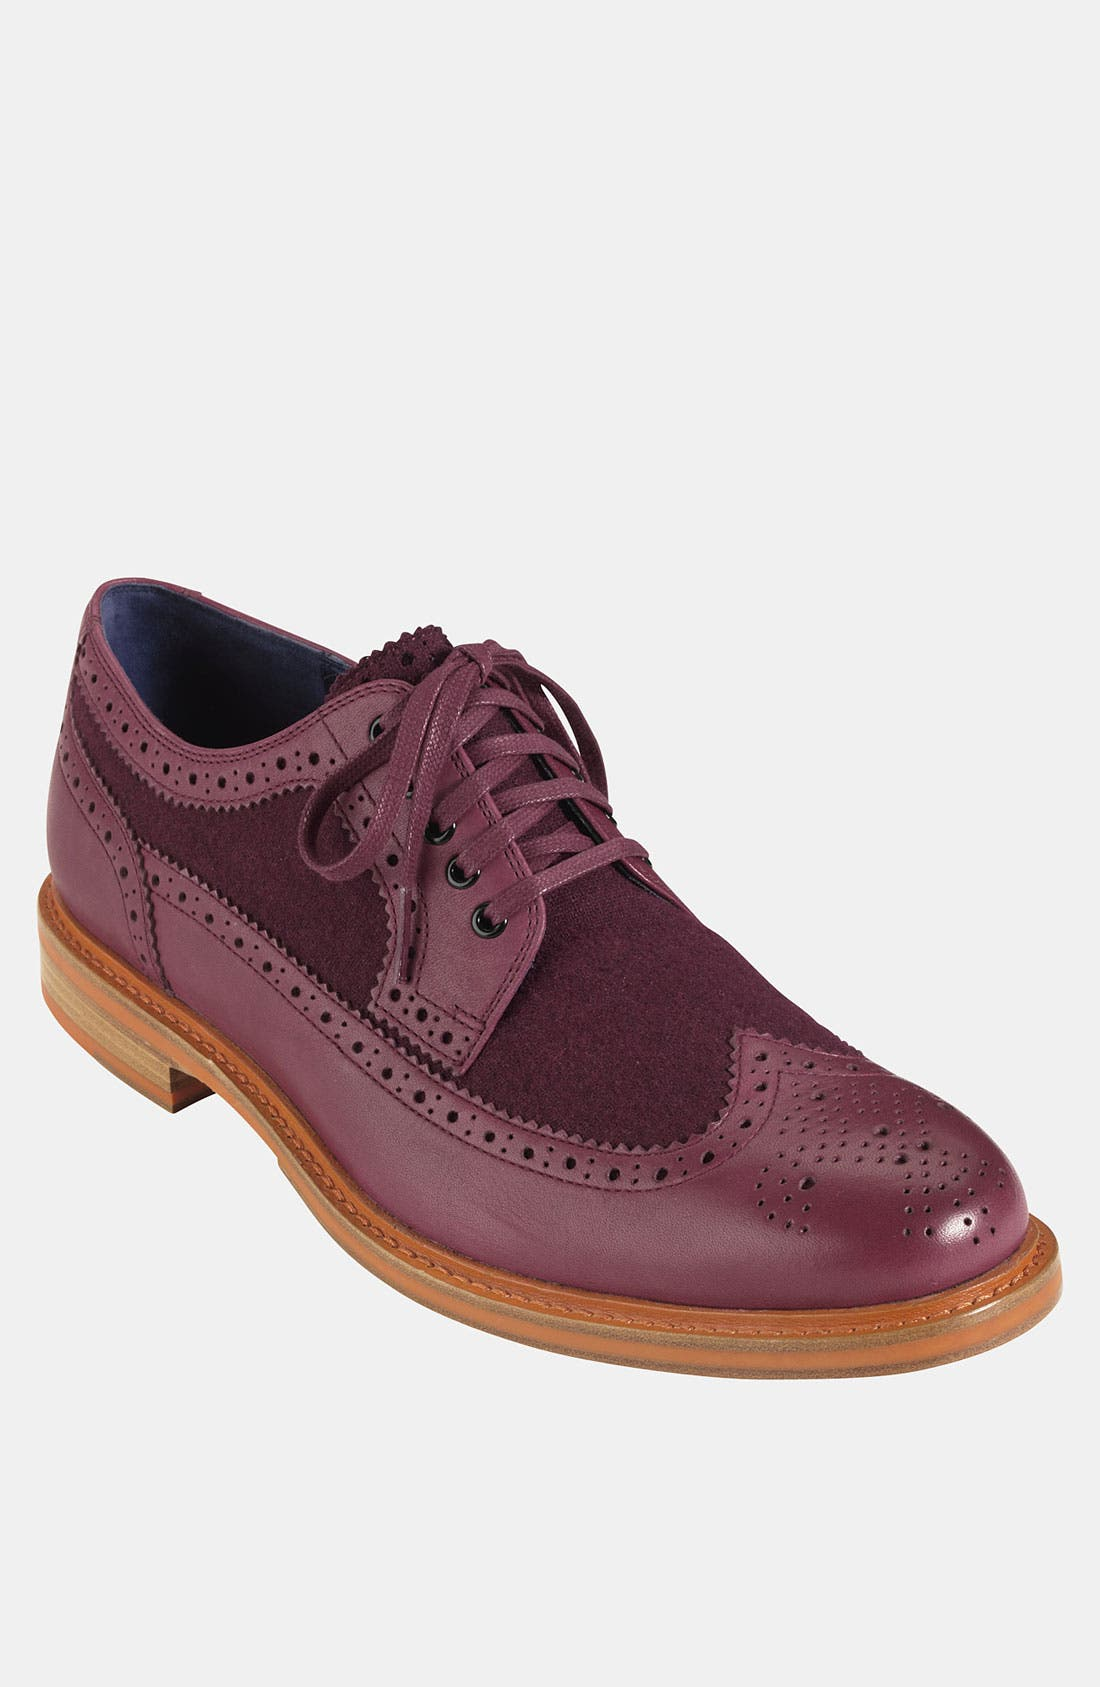 Main Image - Cole Haan 'Cooper Square' Longwing